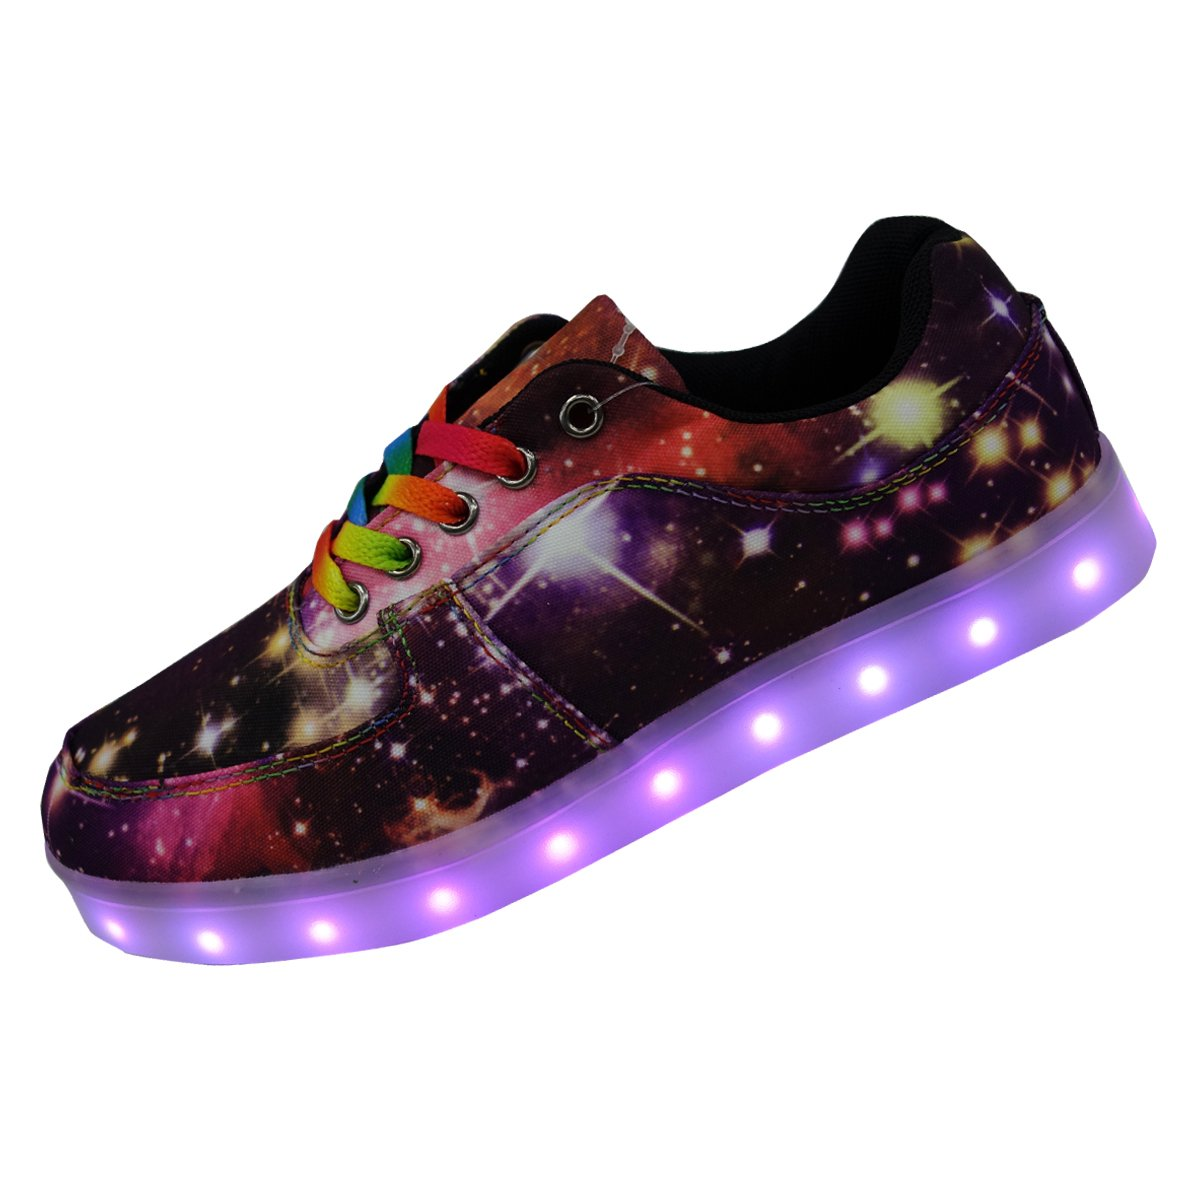 DAYOUT Unique Galaxy Print Led Light up Sneakers for Adults Mens Womens Luminous Canvas Shoes (Womens US 9.5 = EU 40, Purple)